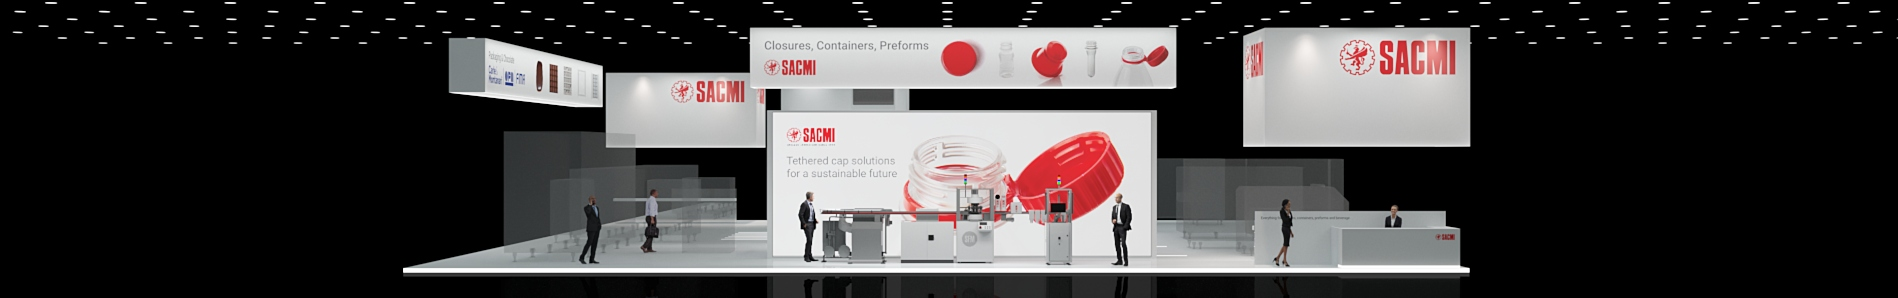 SACMI Closures Containers Preforms Interpack Virtual Tour